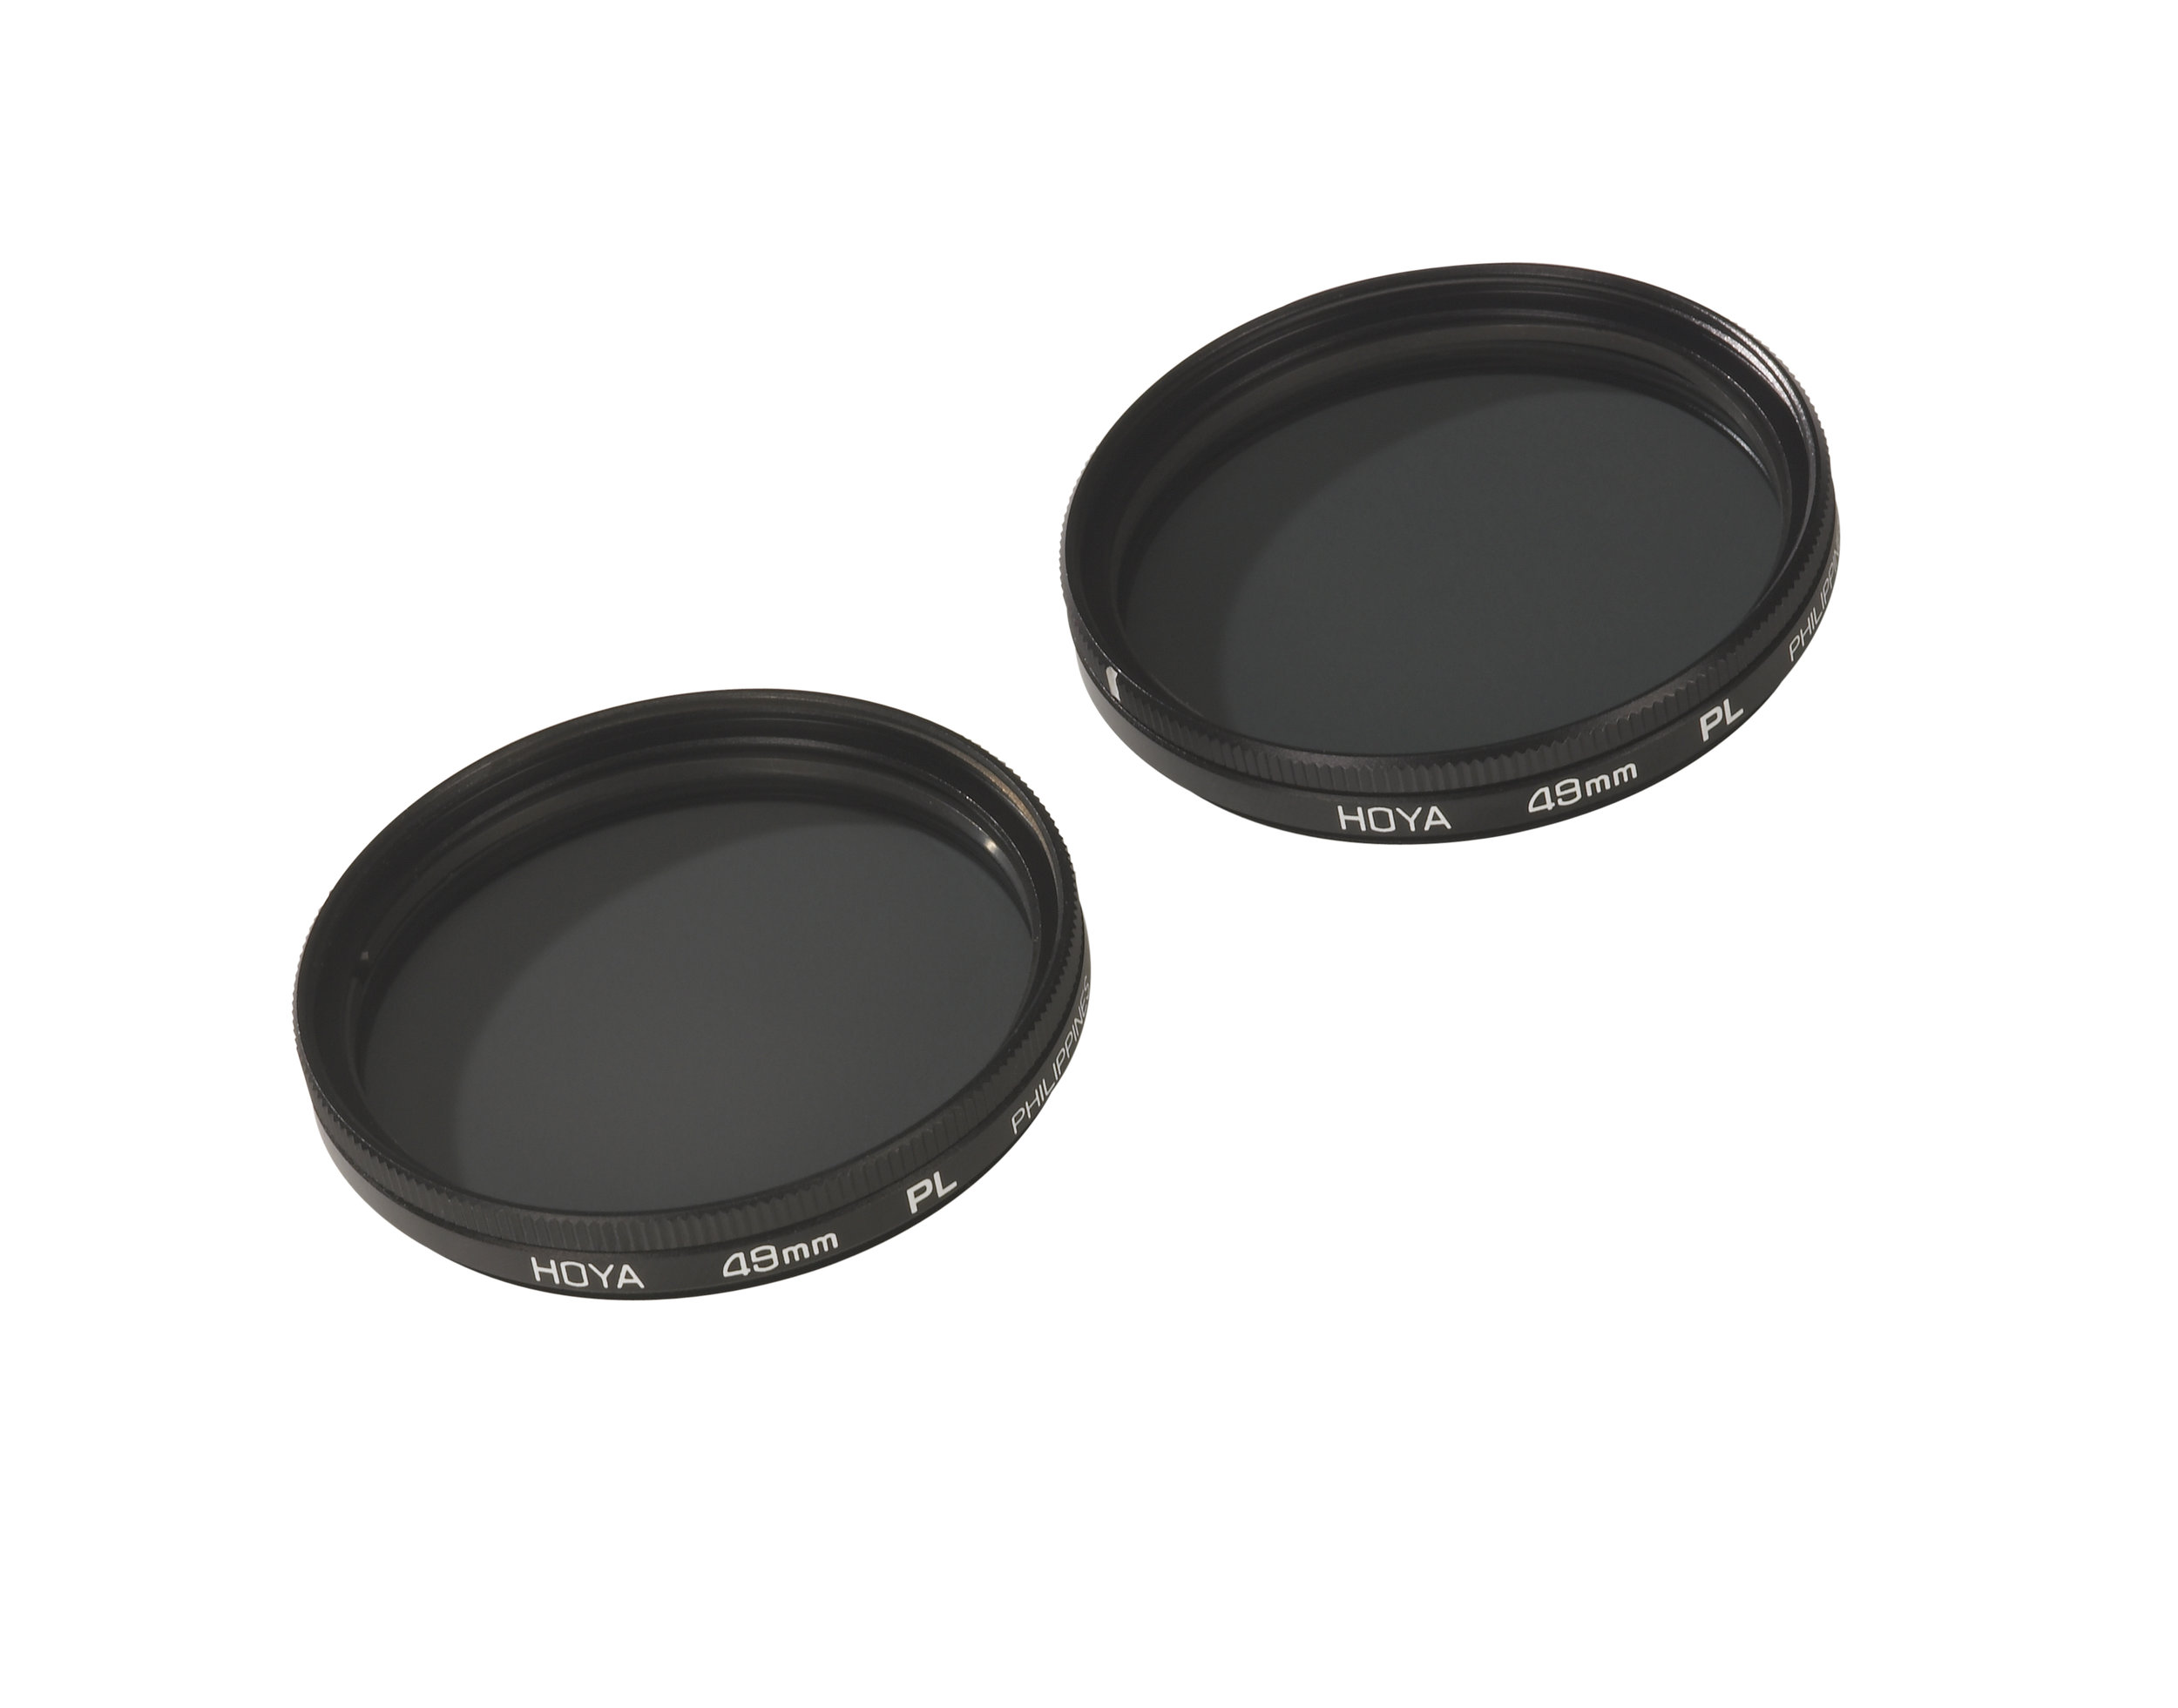 POLARIZING FILTER 55MM - $43.05 Each